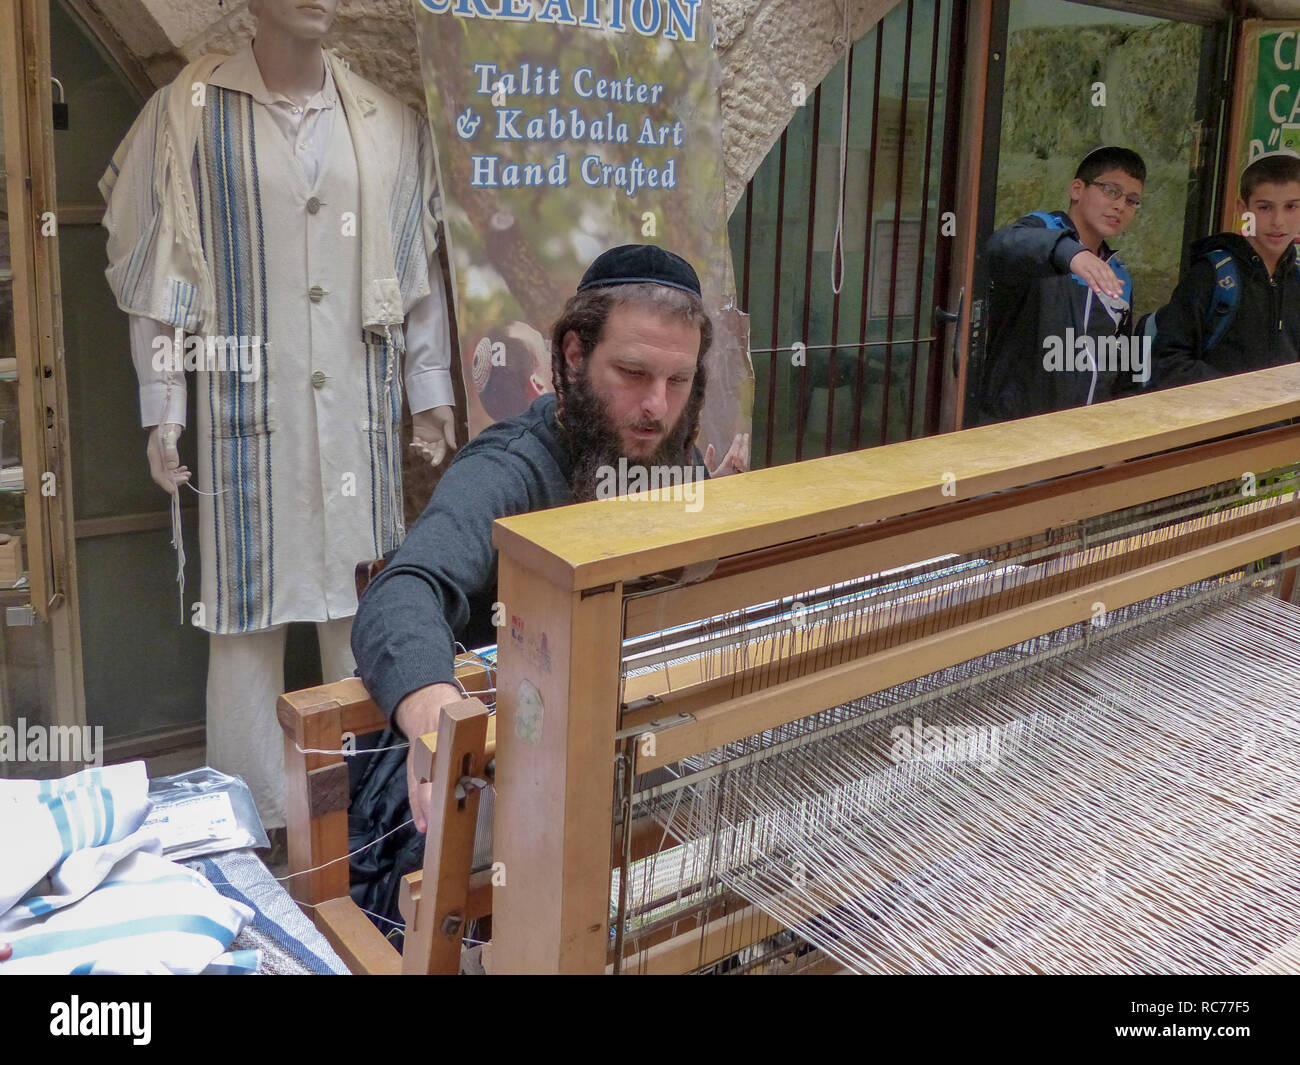 Weaving a talith on a loom Photographed in Jerusalem The Jewish Quarter in the Old City, Israel, - Stock Image